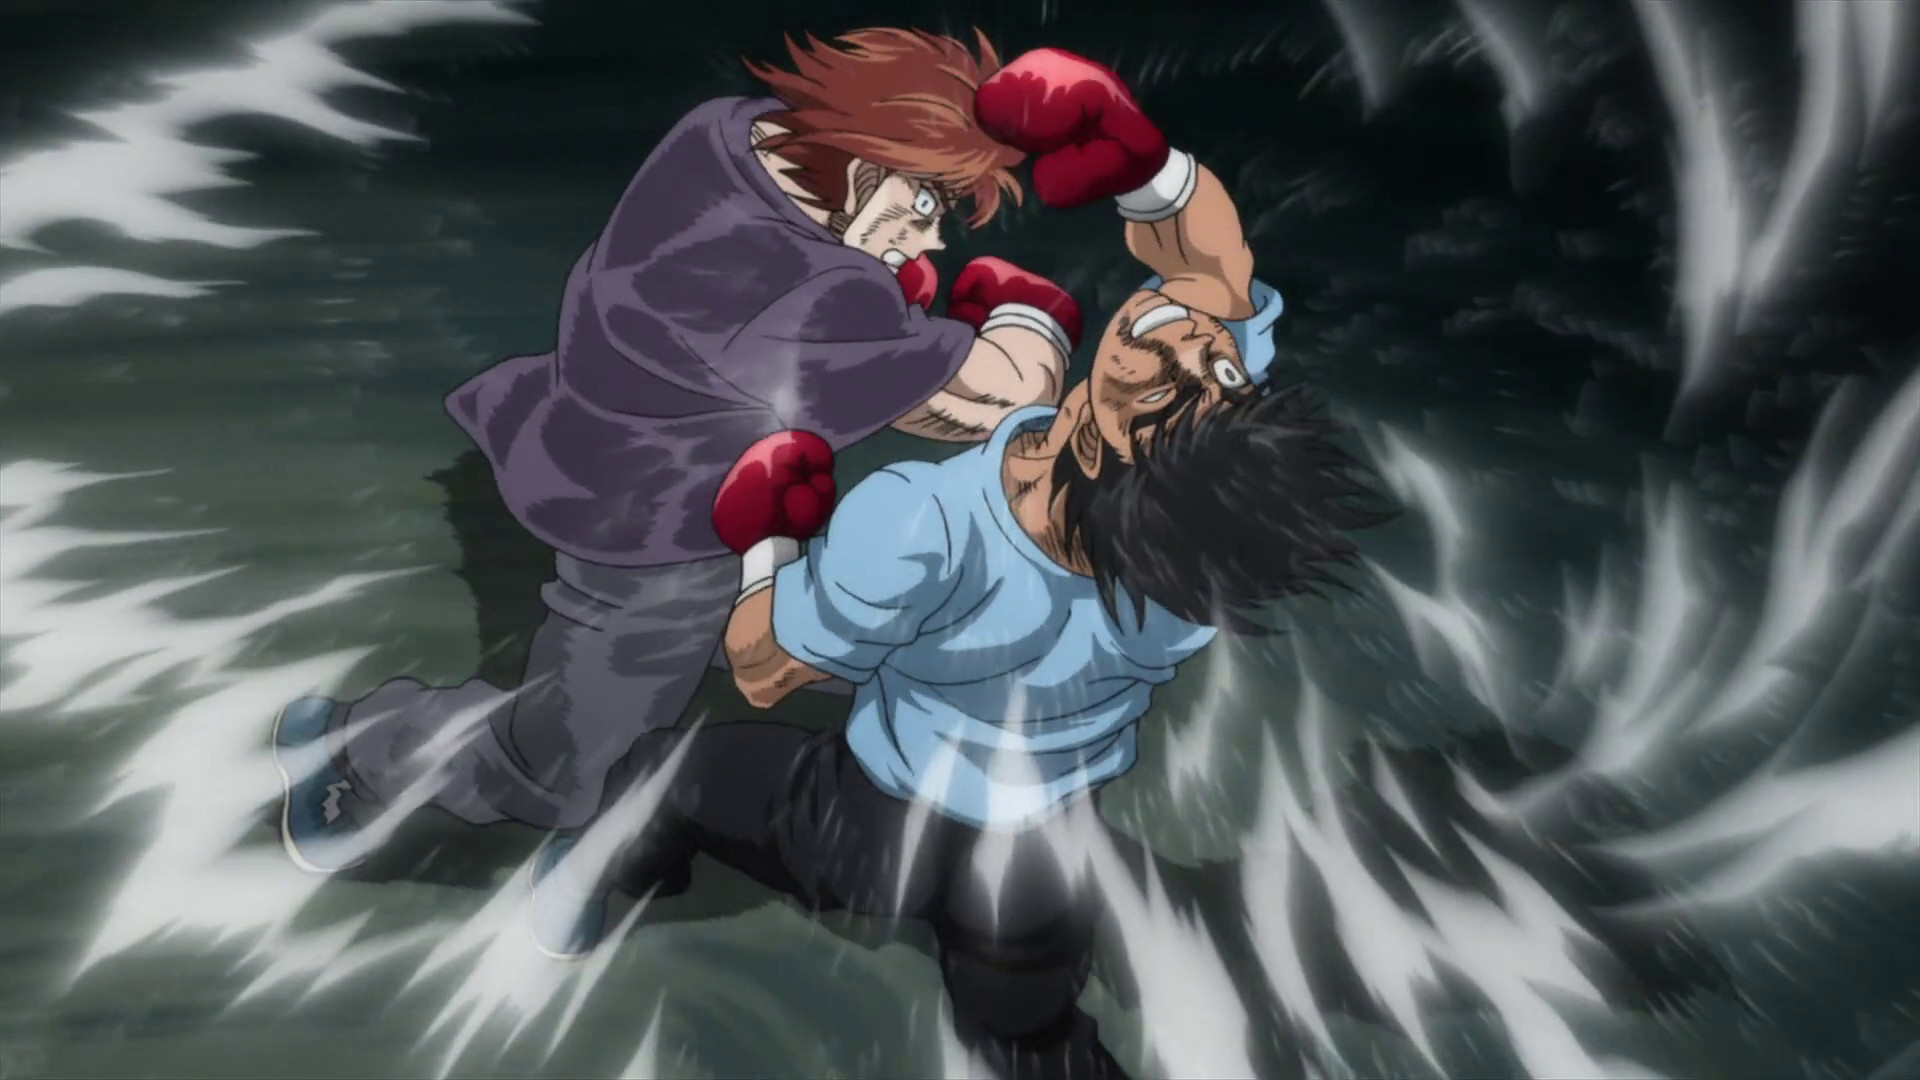 Hajime No Ippo Best Fight Posted By Michelle Cunningham